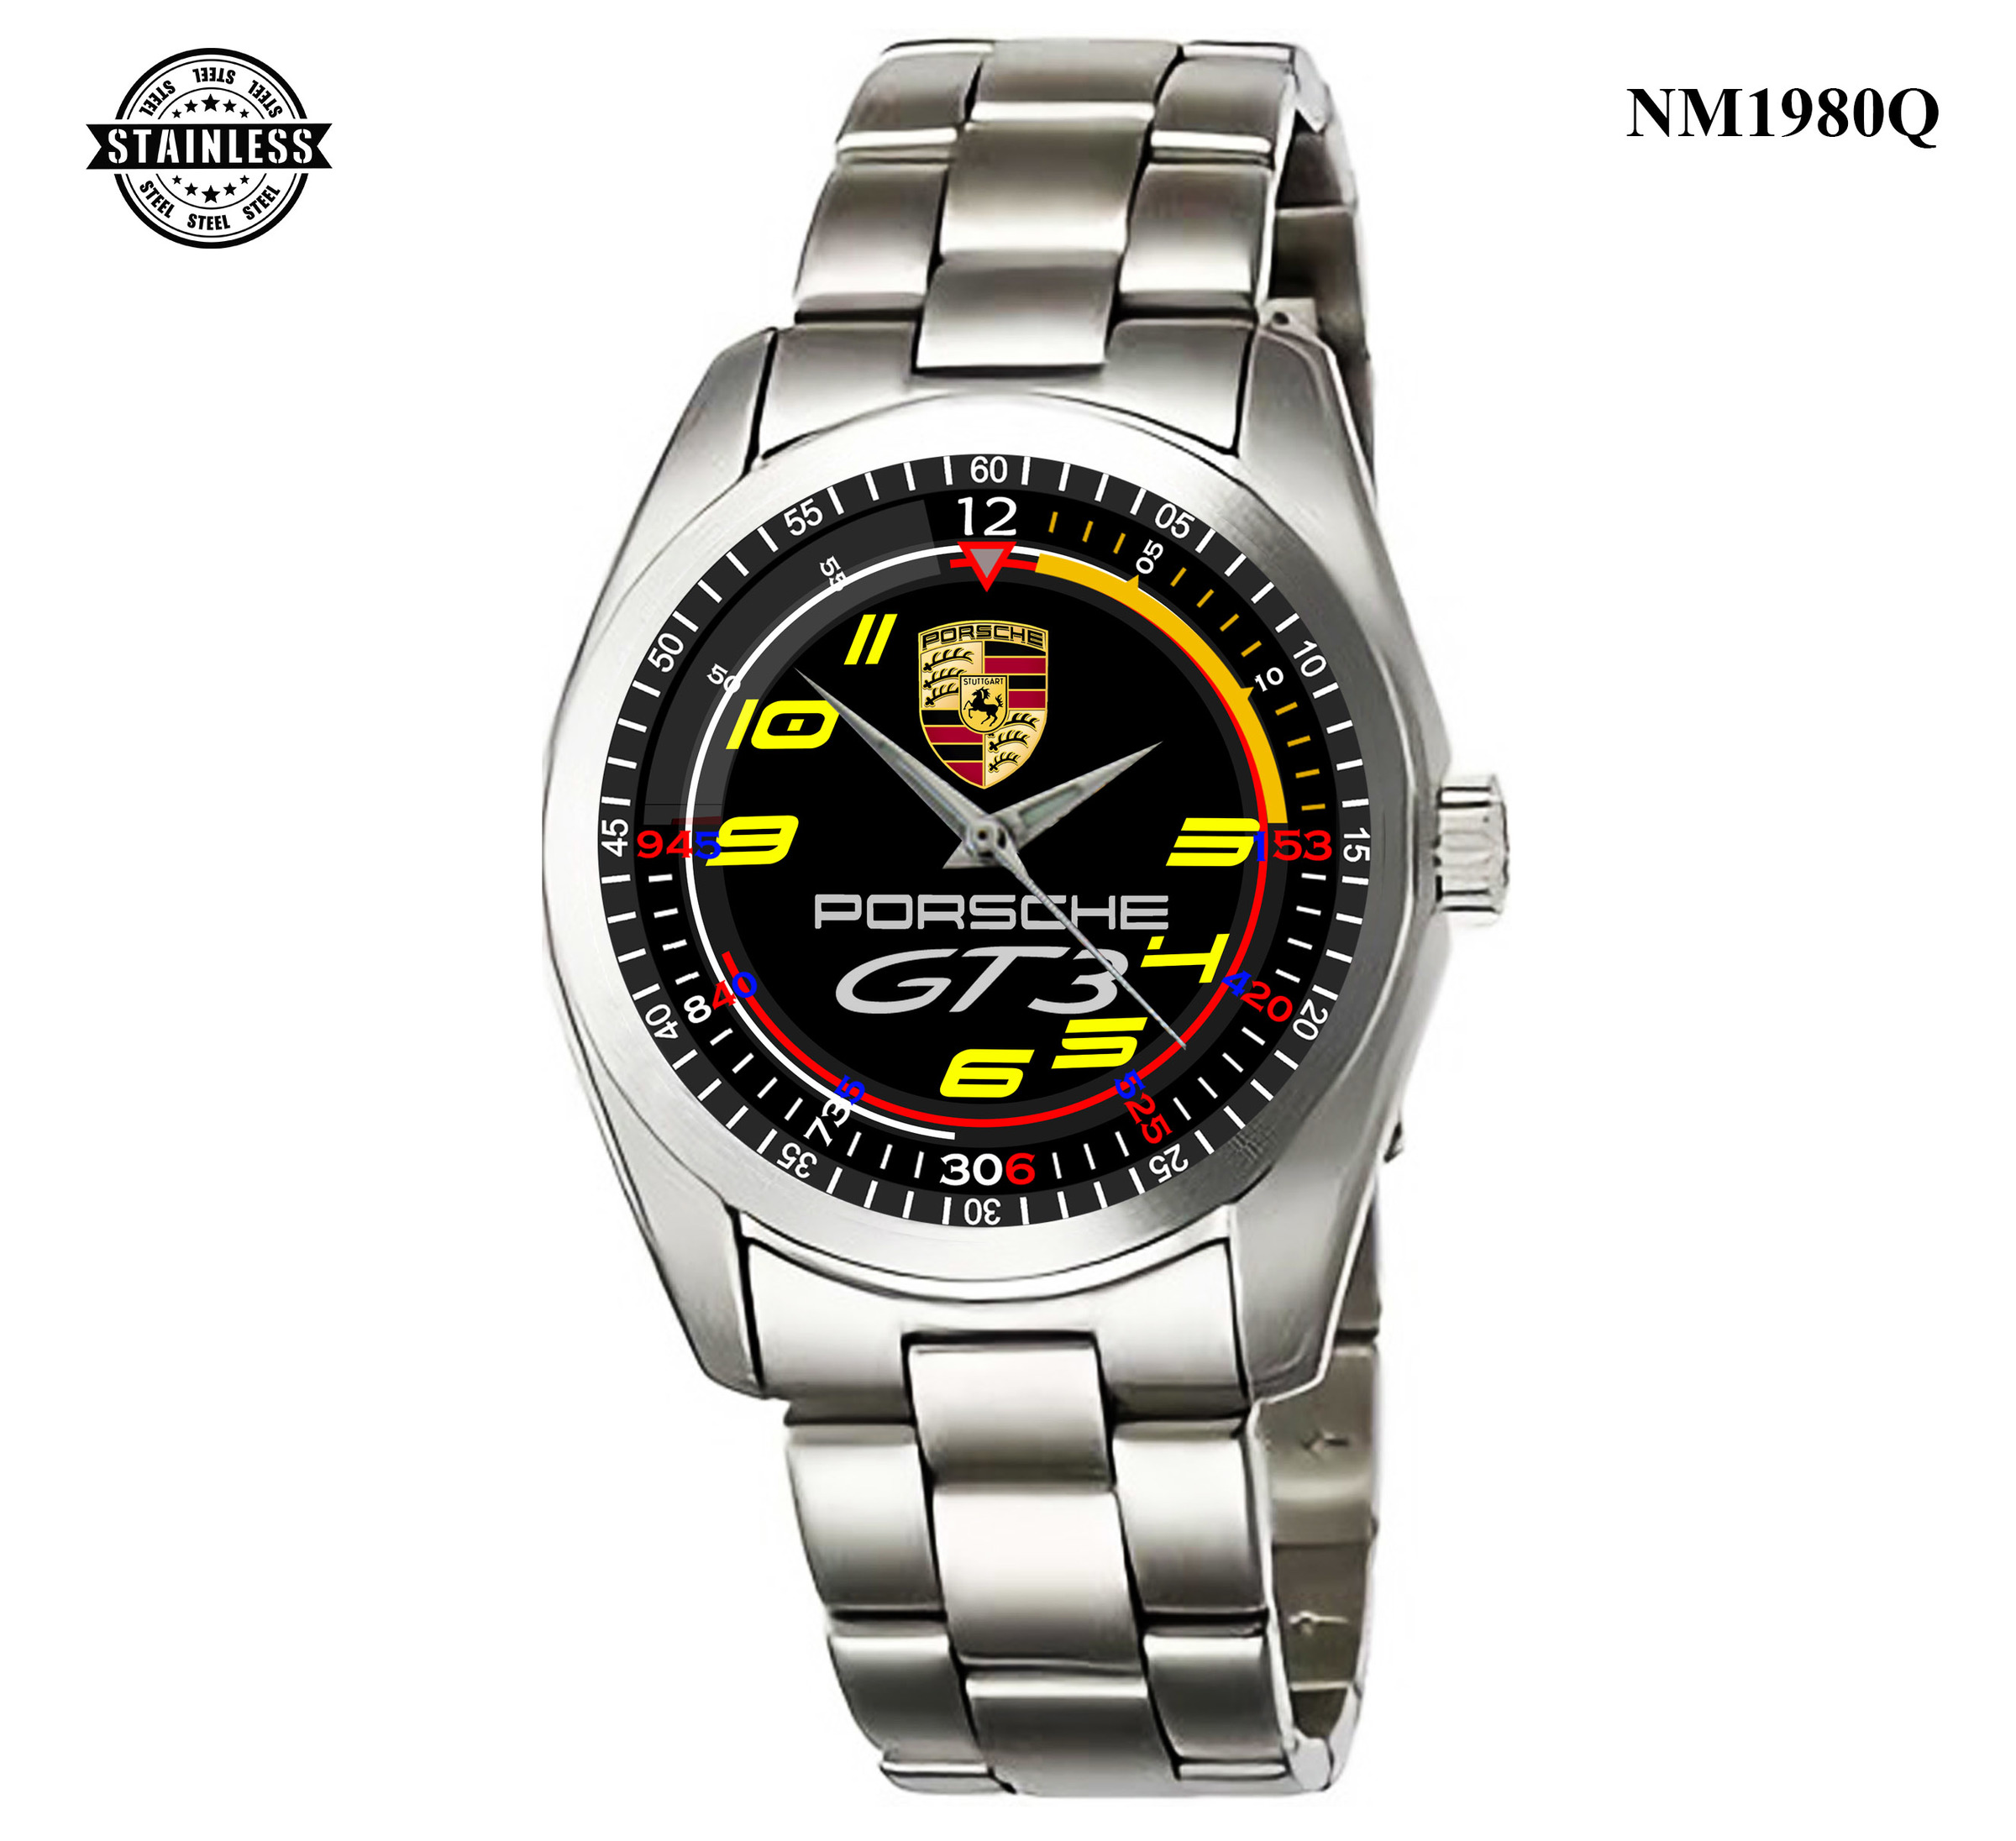 1.8 Rare Item Mens Jewelery porsche cayenne-gt 3 911 Sport Metal Watch.jpg